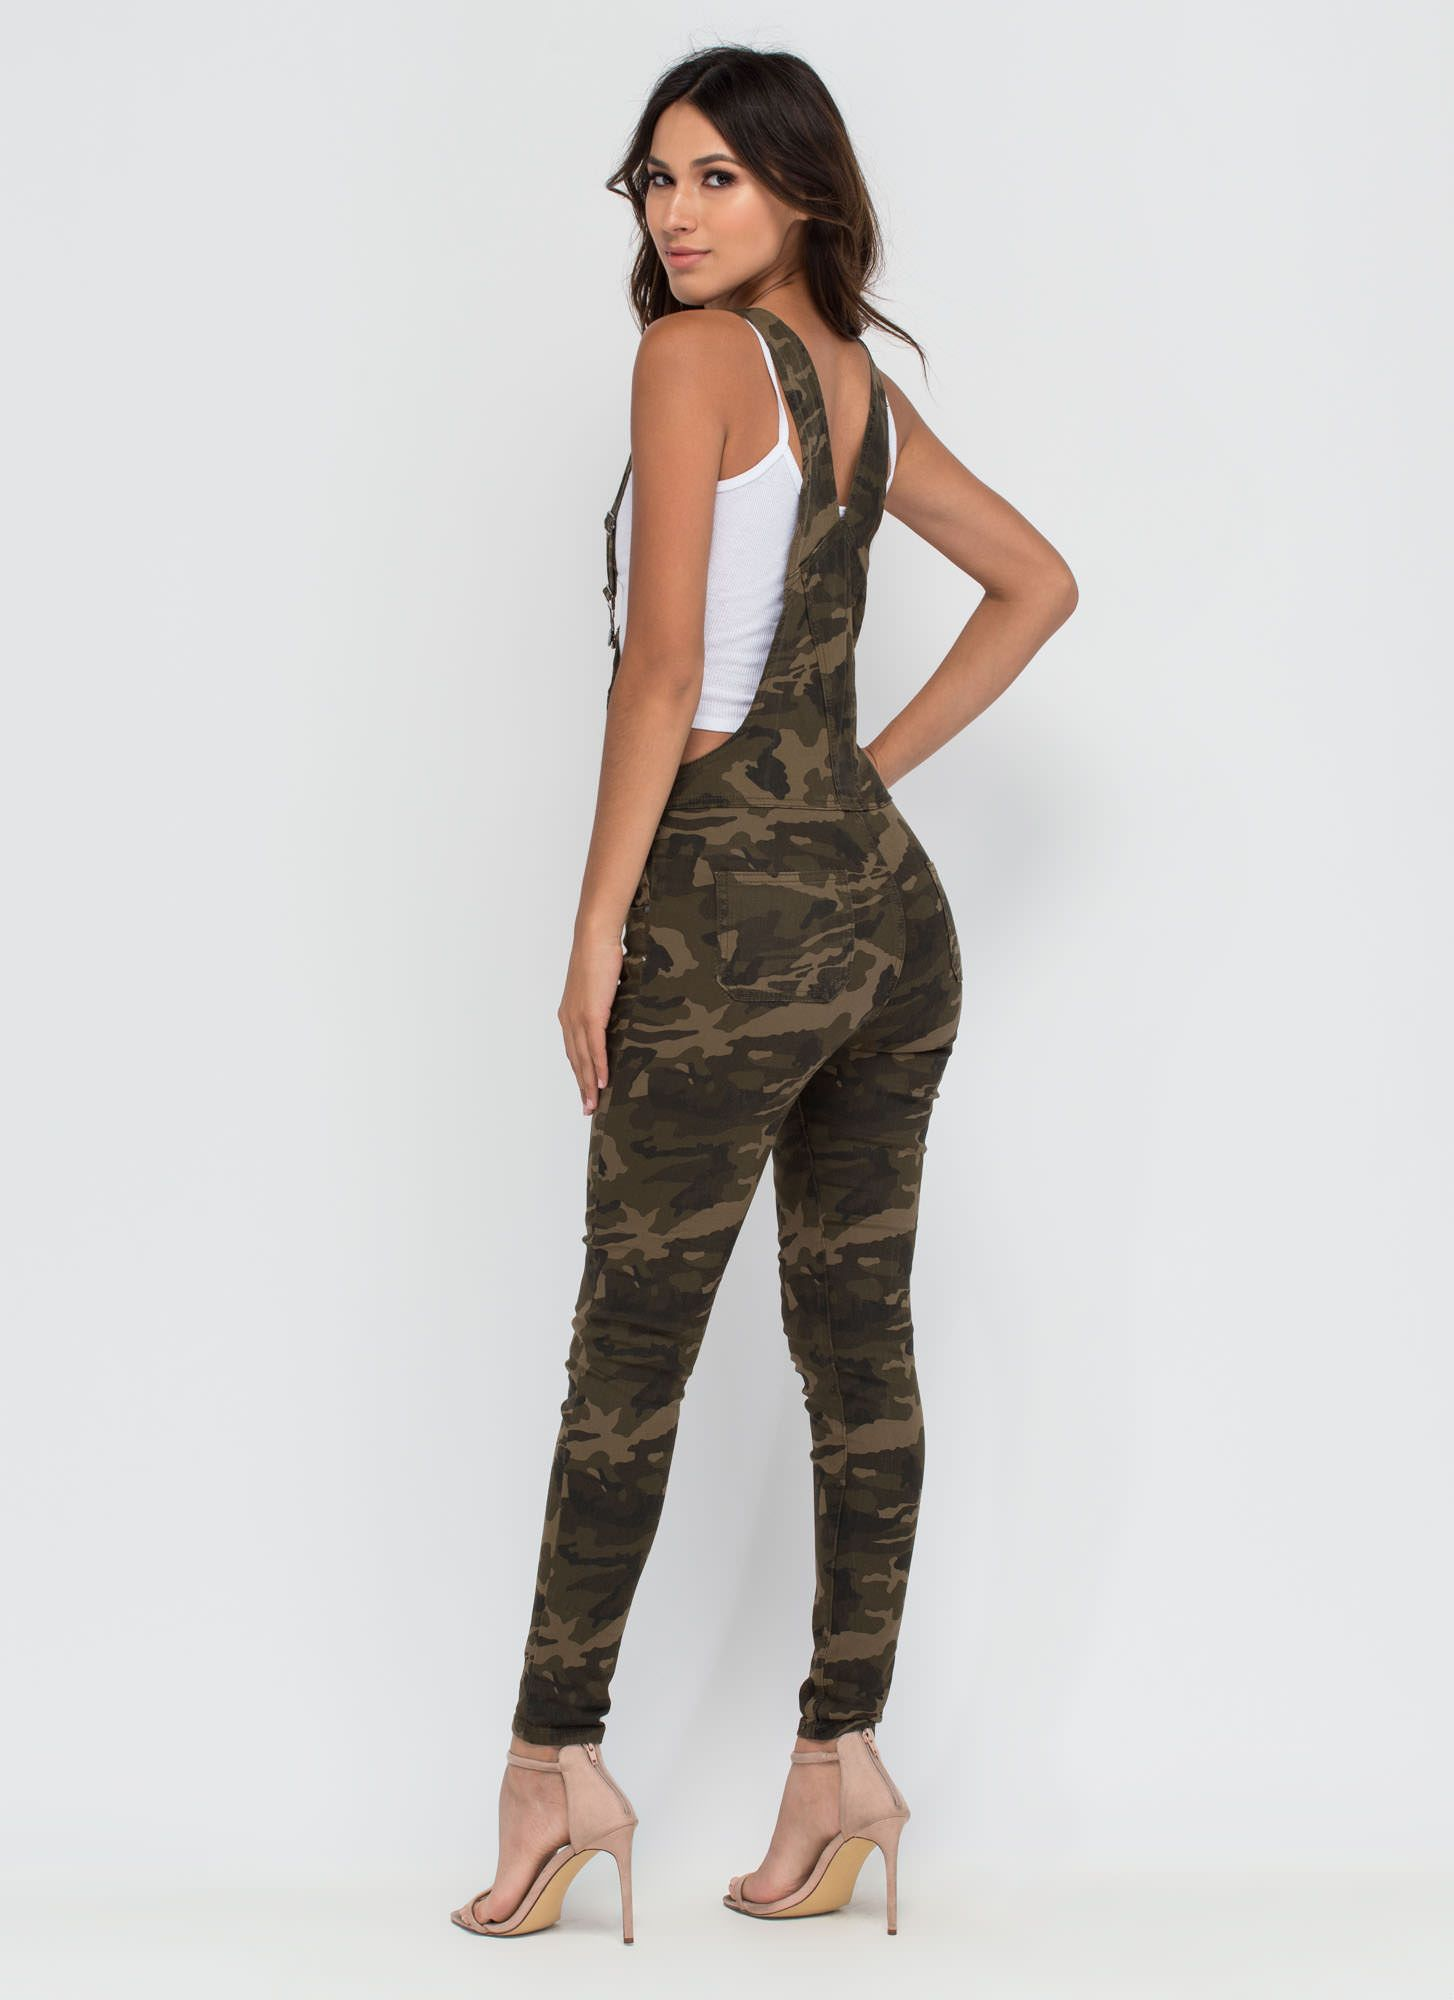 d0bee62ced3b3 FOREVER 21 Camo Print Overall Pants | my style | Camouflage pants,  Camoflauge pants, Camo outfits